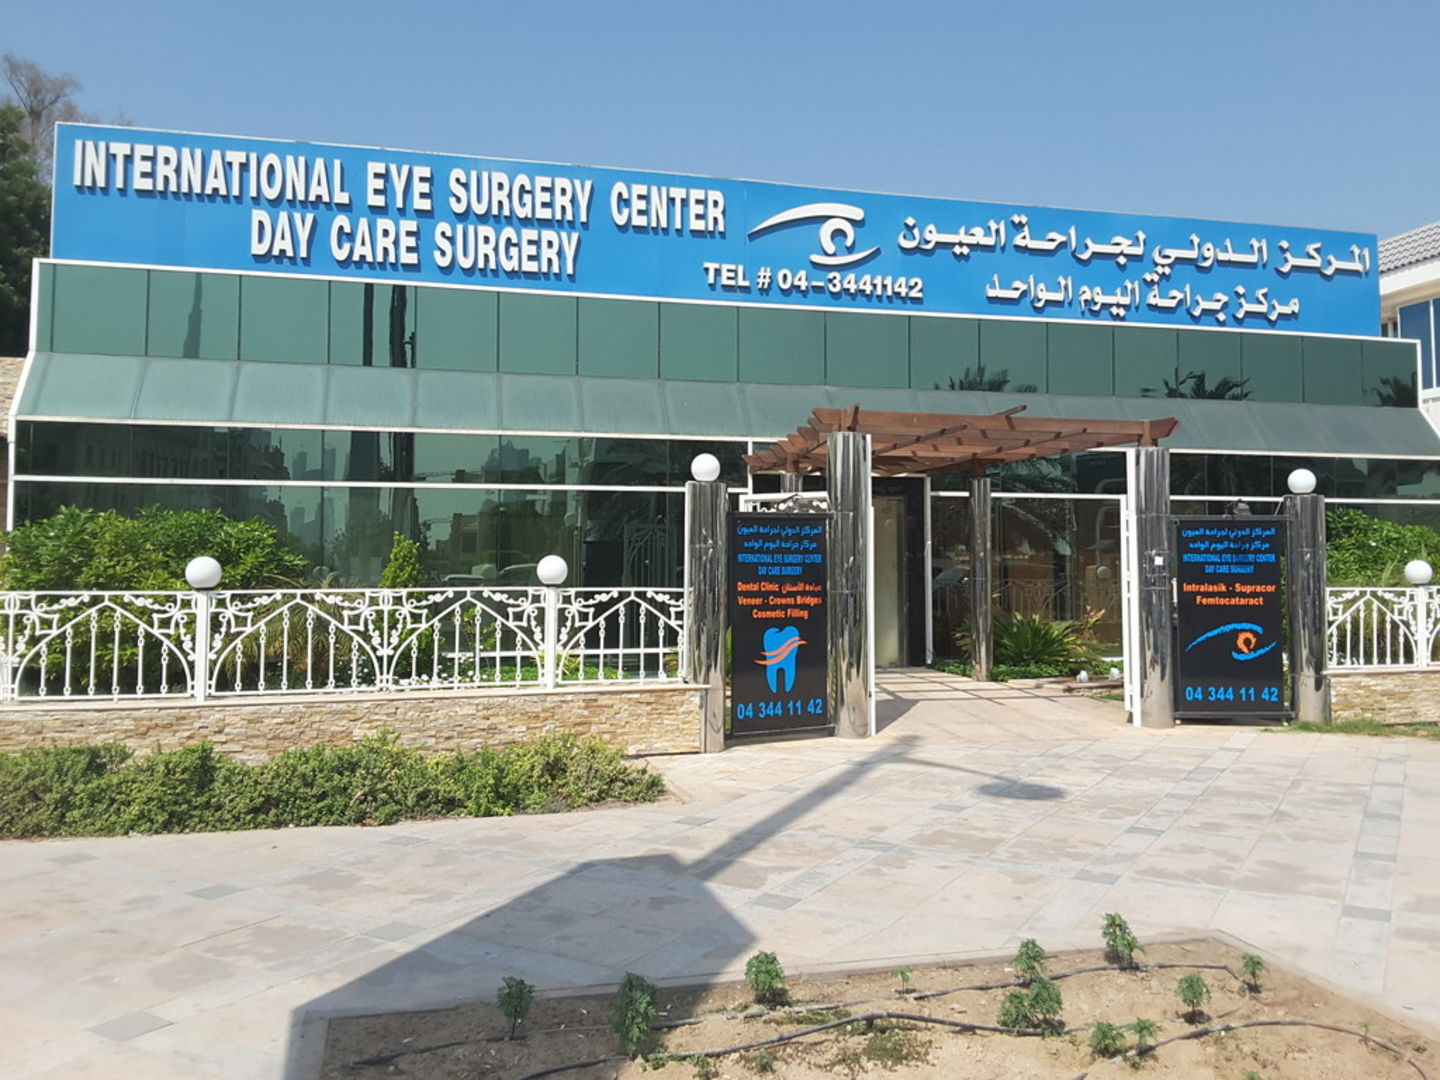 HiDubai-business-international-eye-surgery-center-beauty-wellness-health-hospitals-clinics-jumeirah-1-dubai-2